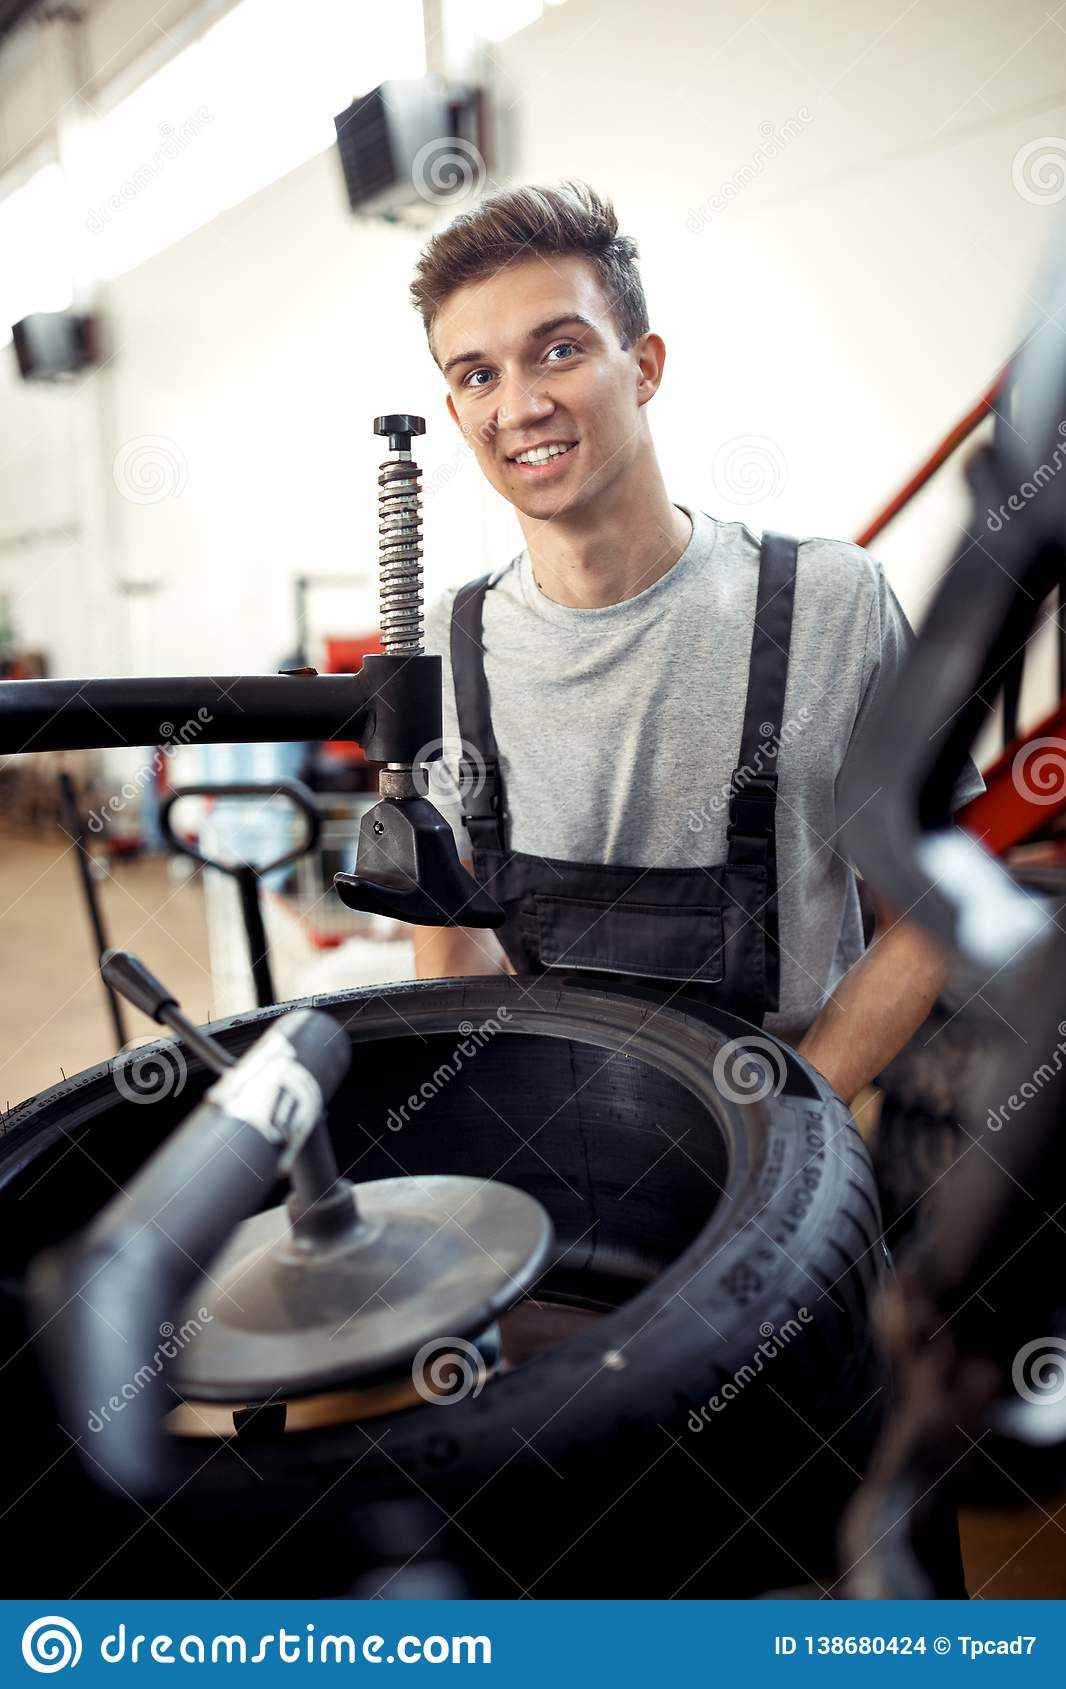 An attractive young mechanic is smiling while working at a car workshop